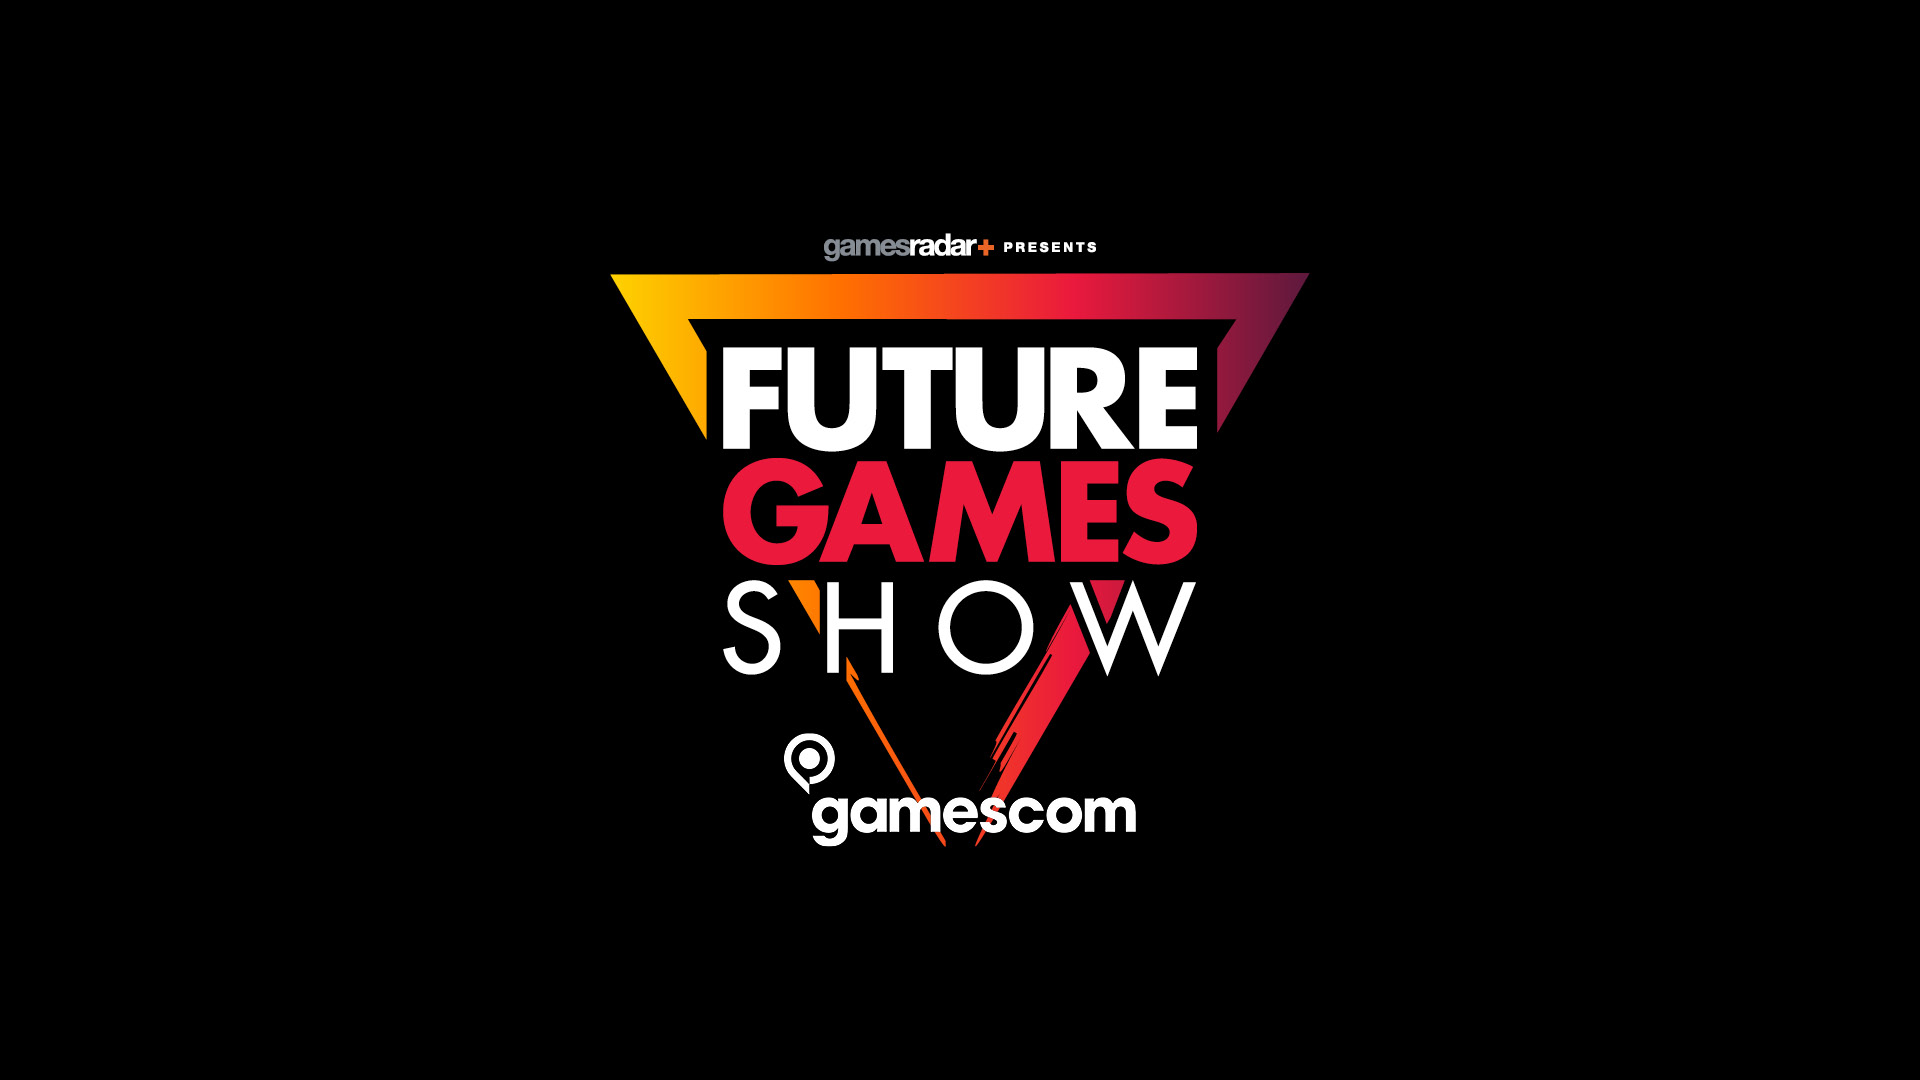 Future Games Show: Livestream with over 40 games from 10 p.m.